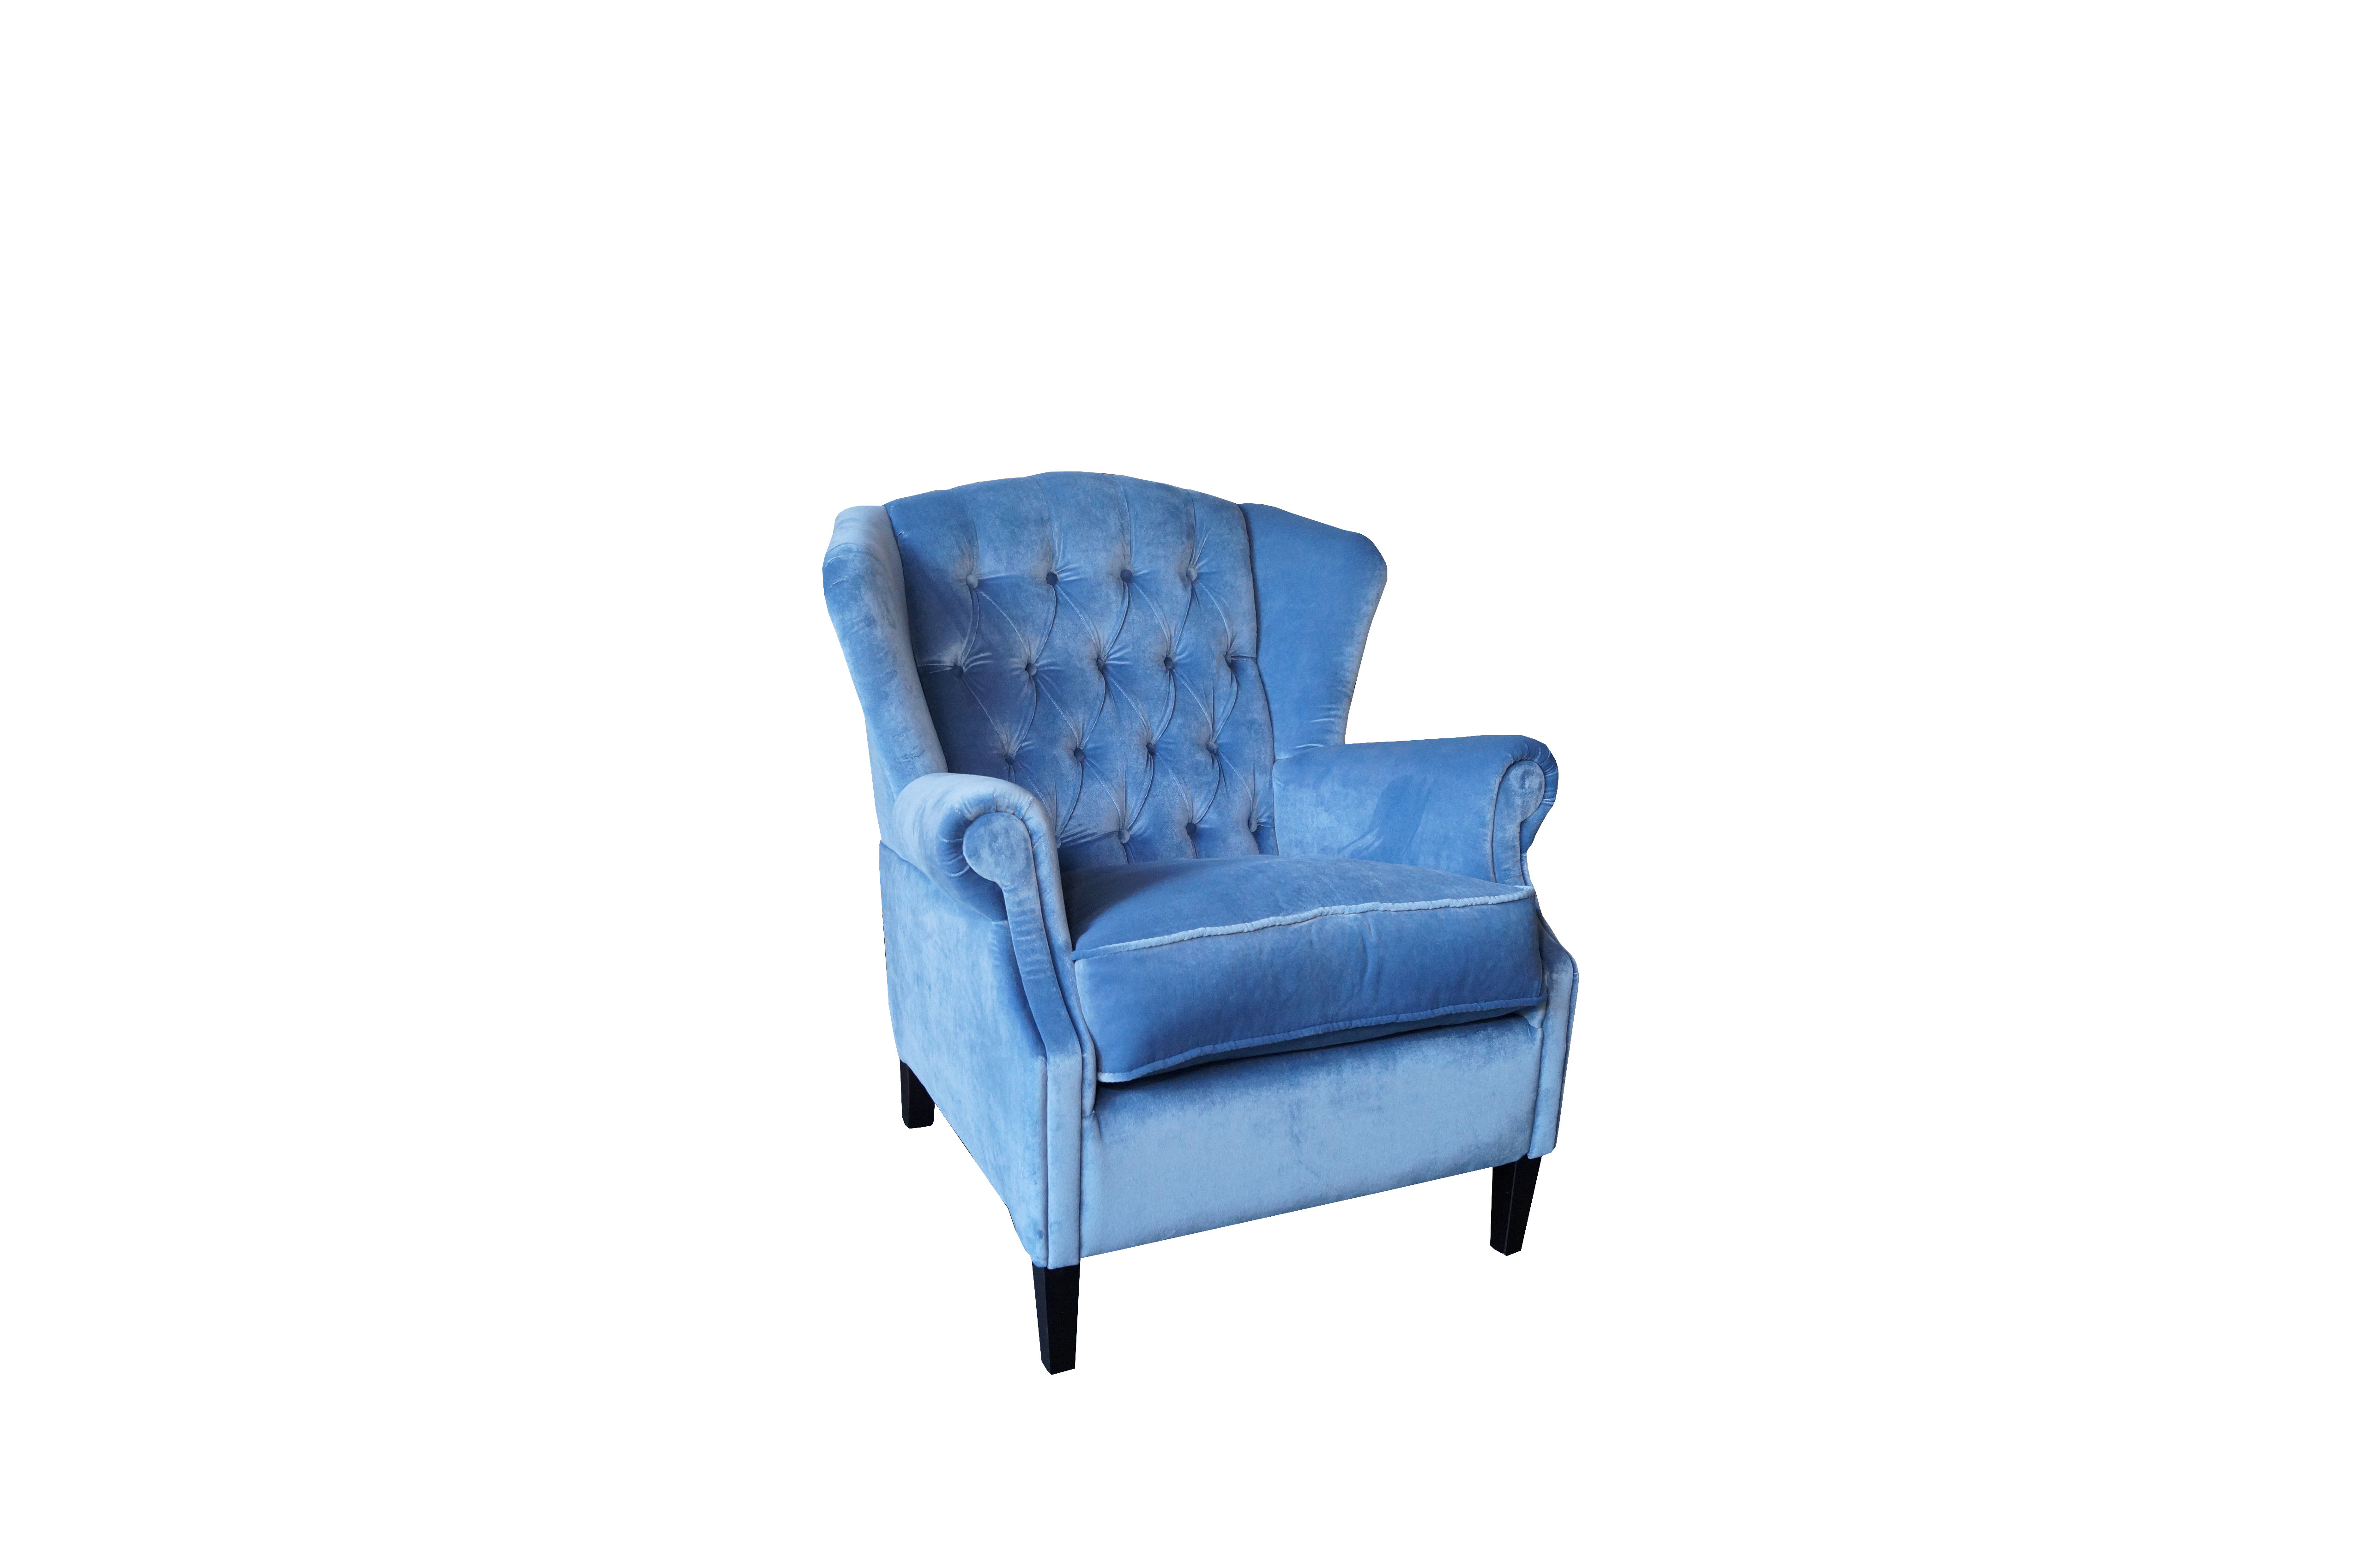 2 Chesterfield Fauteuils.Fauteuil Oxford Chesterfield Mr Higgins